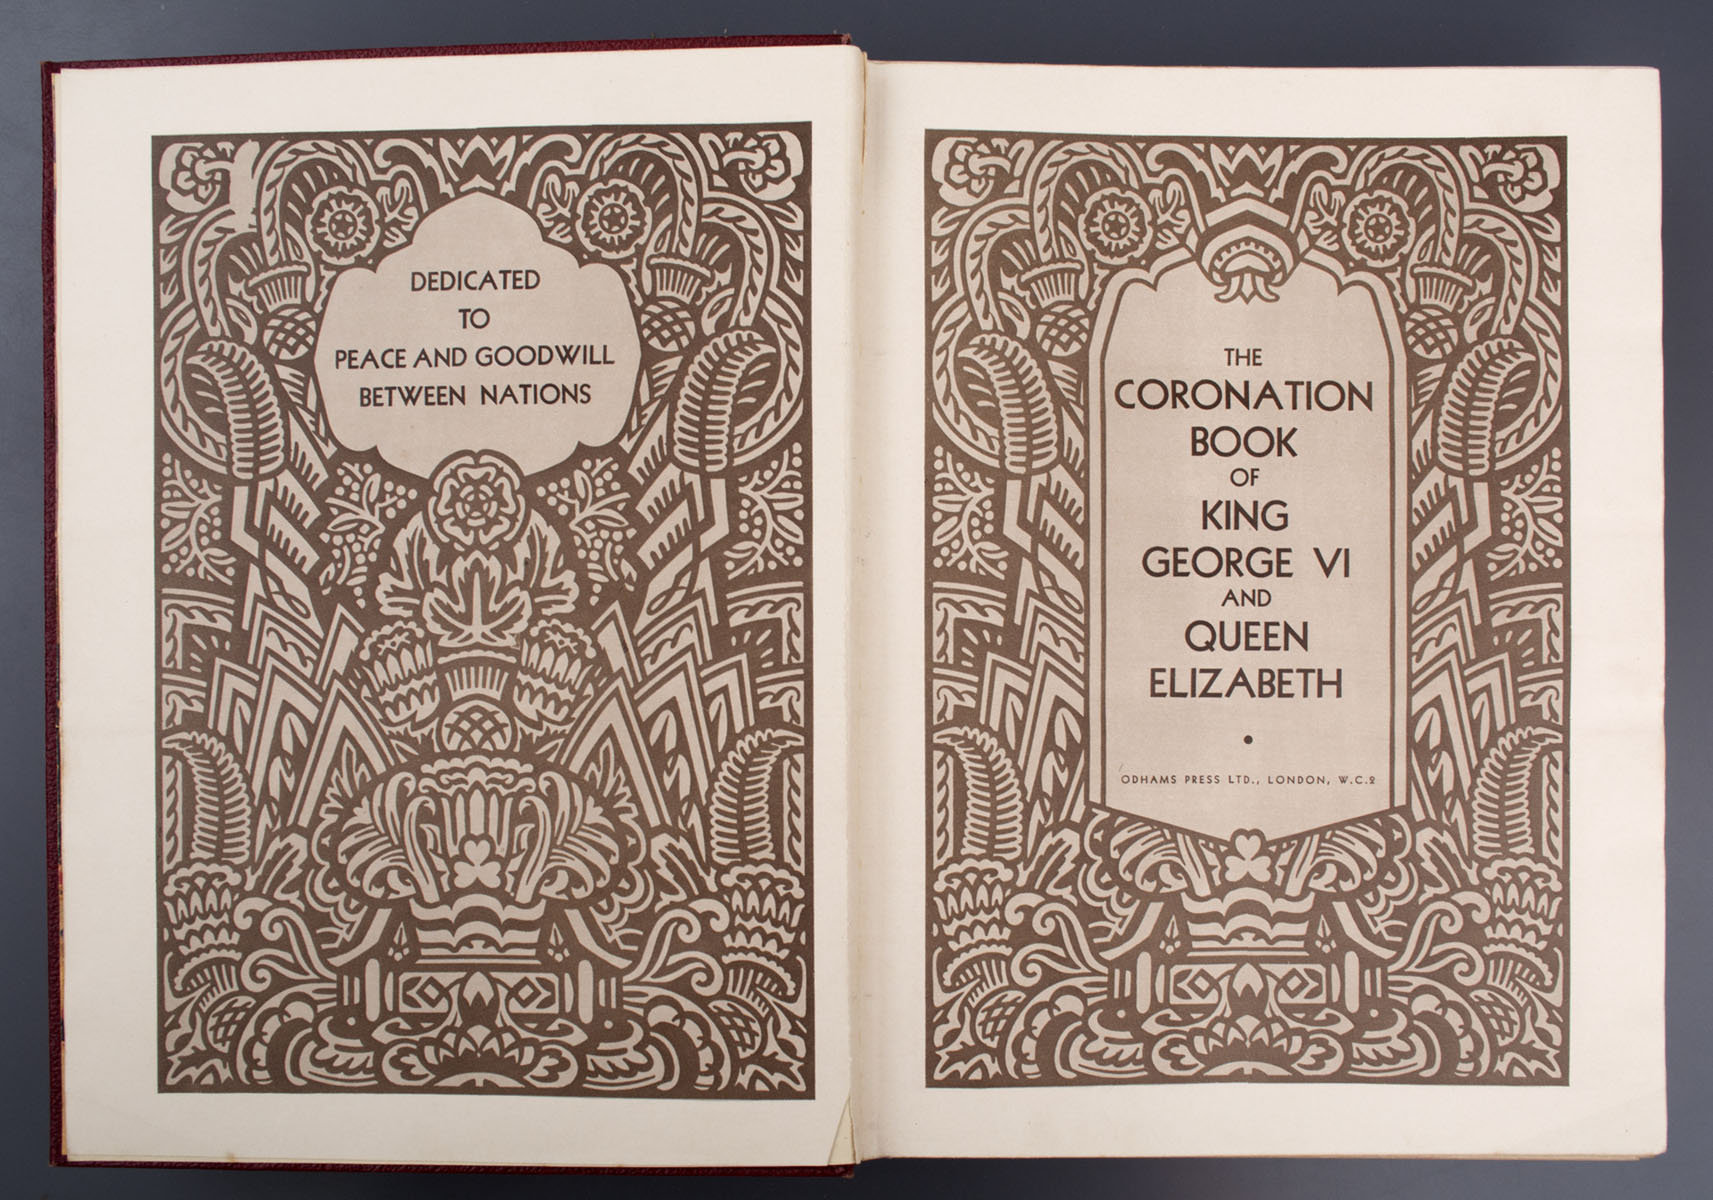 The Coronation book of King George VI and Queen Elizabeth